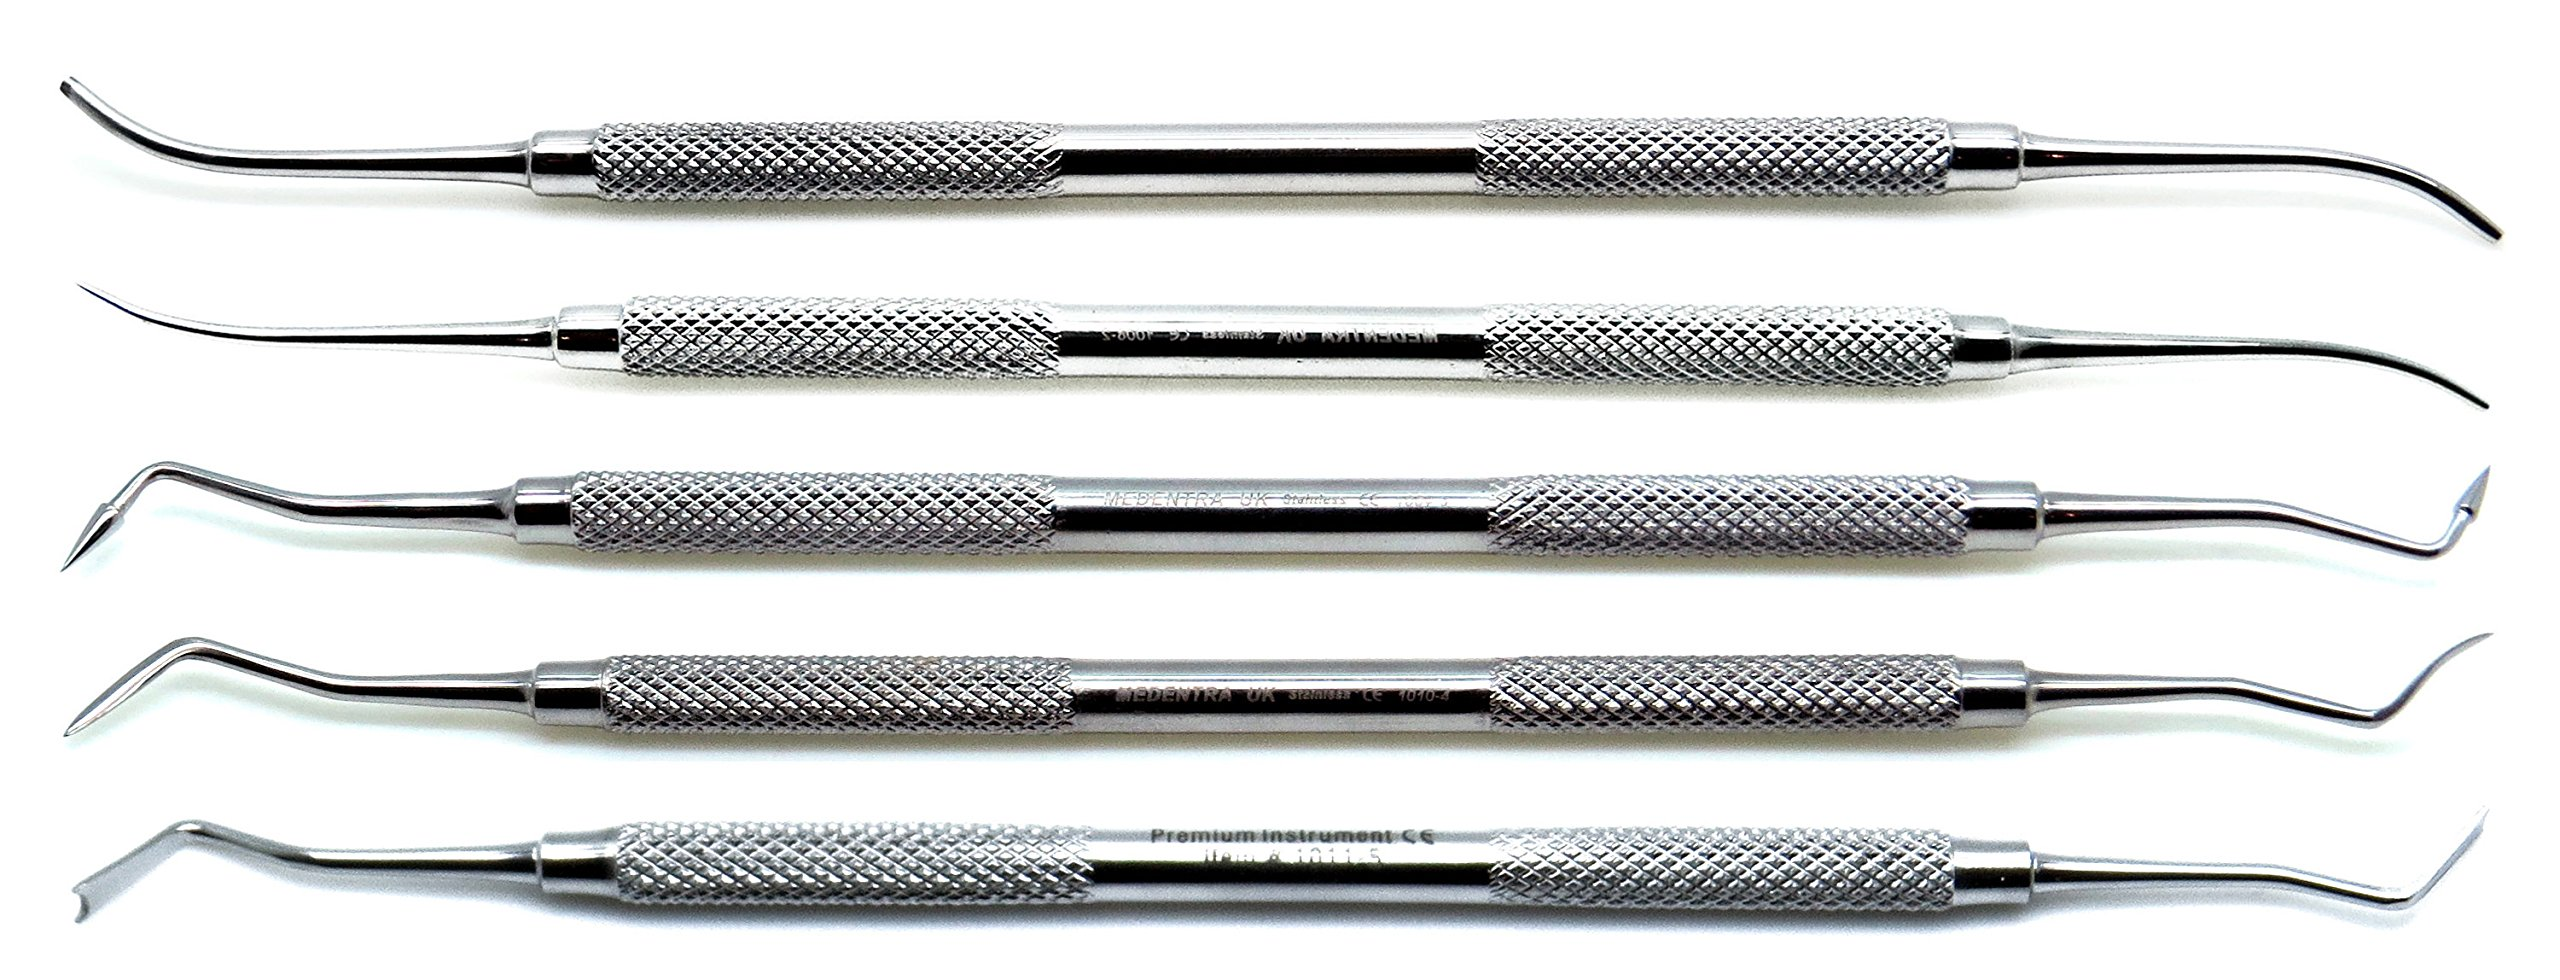 Dental Pk Thomas Wax Carvers P.K 1, 2, 3, 4, 5 Restorative Double Ended Waxing Modelling Instruments 5 Pieces Set by Superior (Image #2)